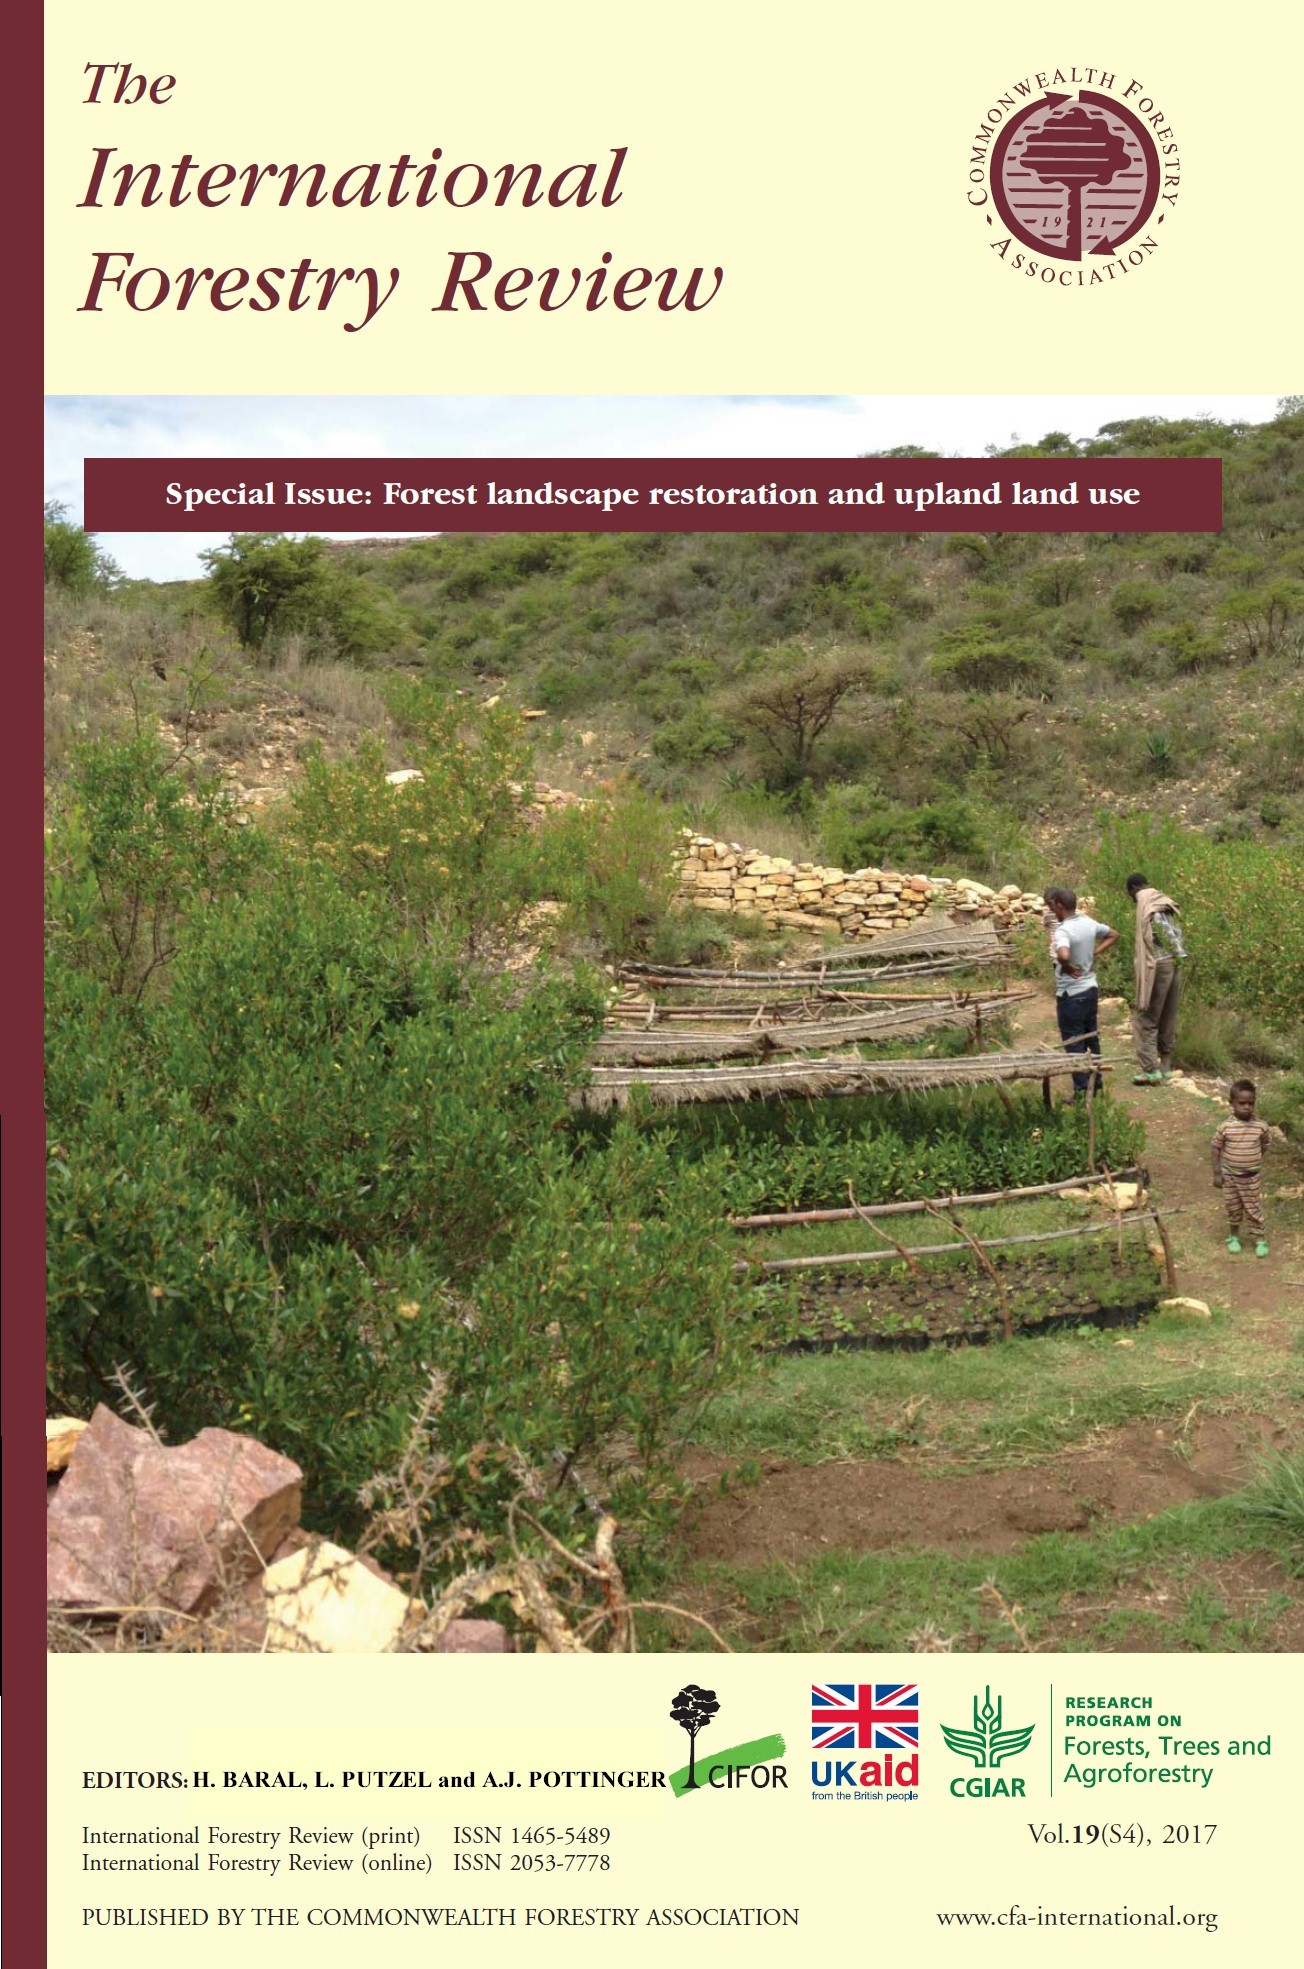 Studies on forest landscape restoration in hilly and mountainous regions of Asia and Africa - an introduction to the Special Issue